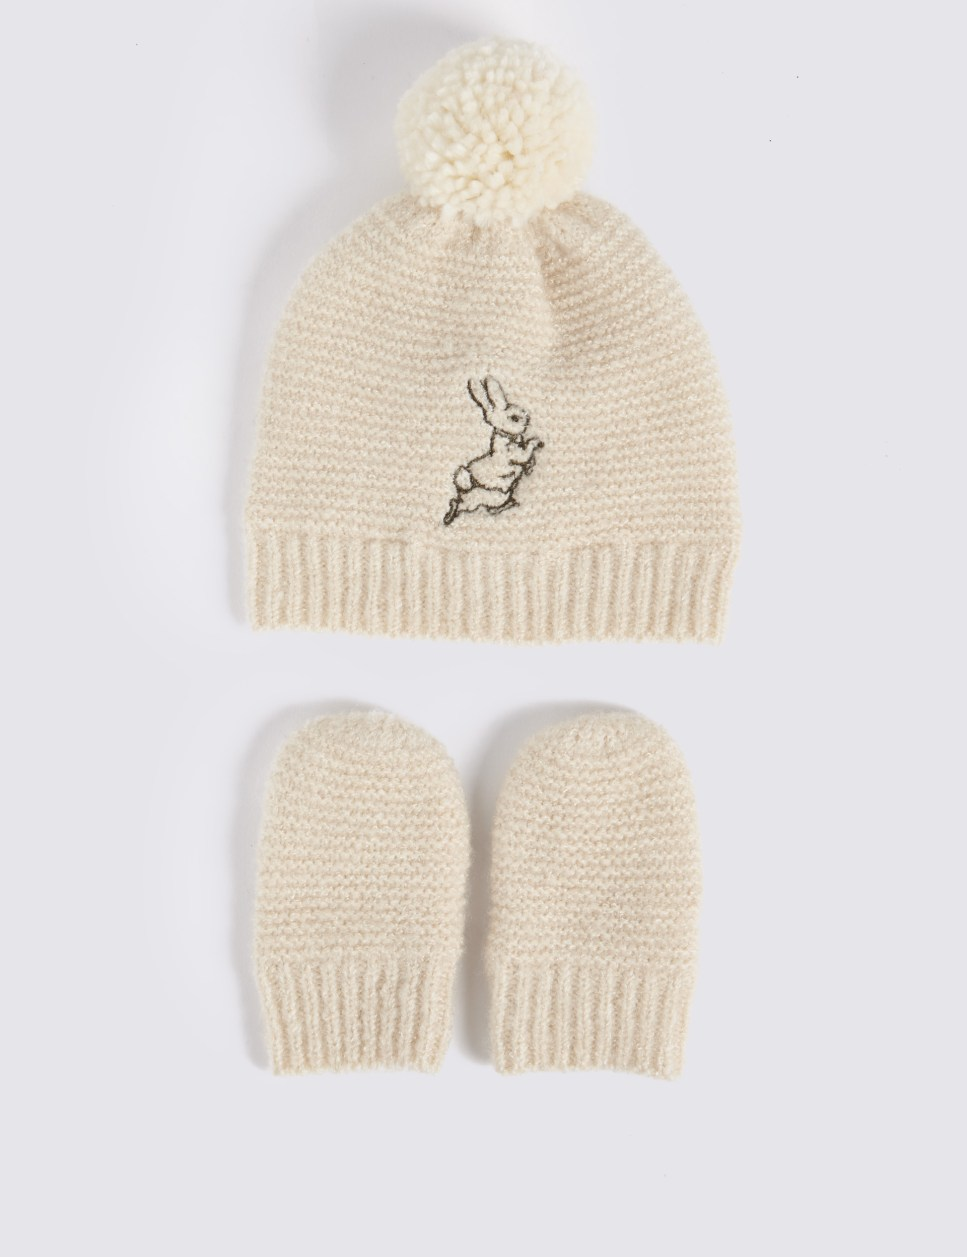 M&S Baby Peter RabbitTM Hat & Mittens Set - £12-£14